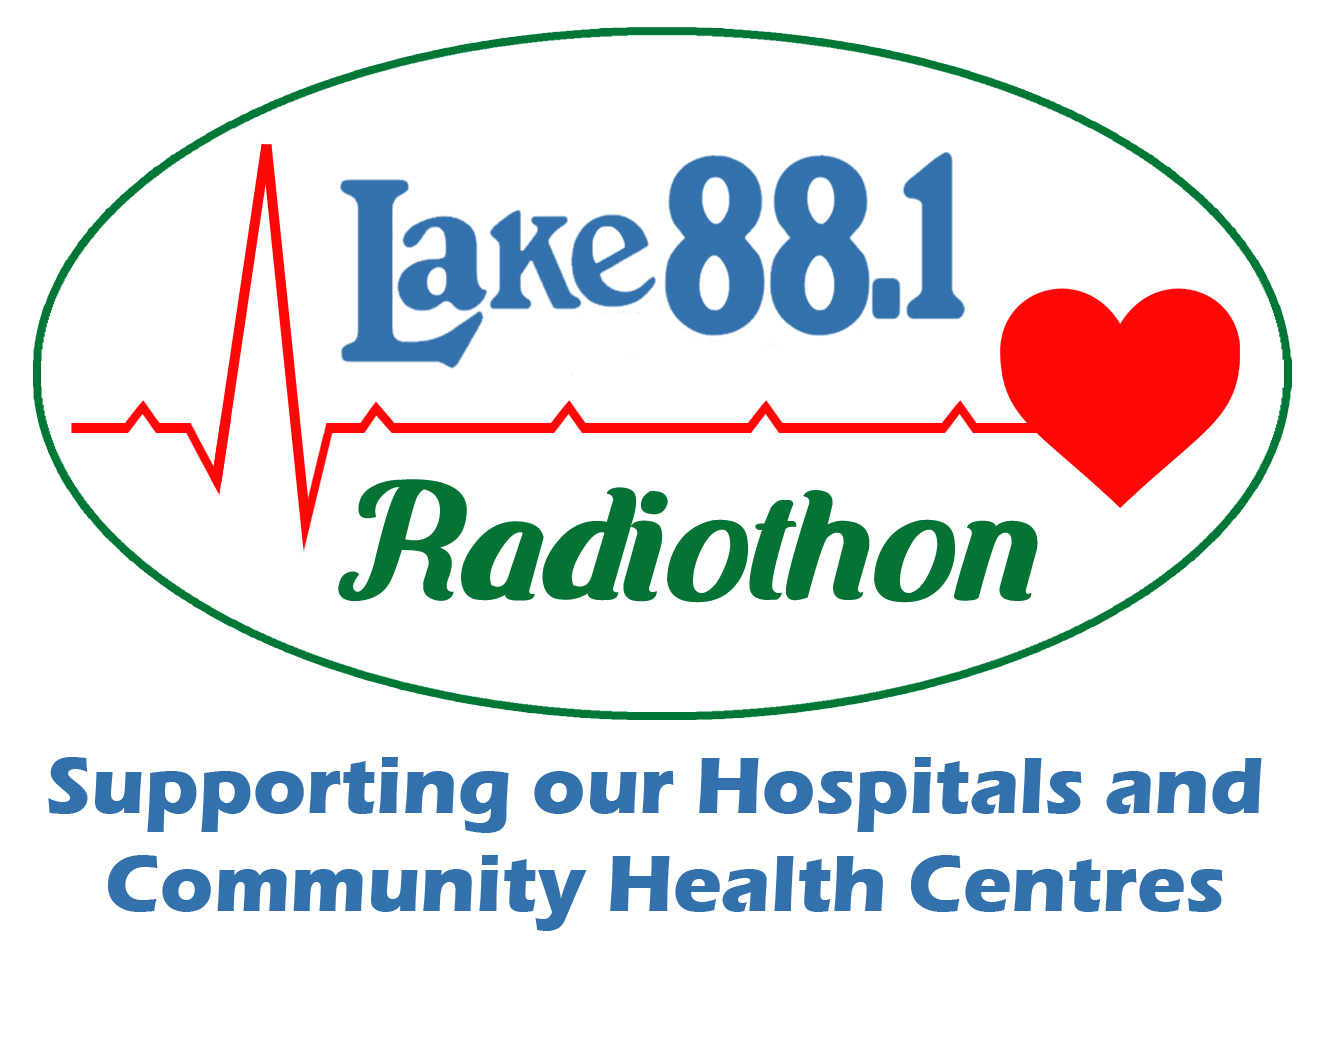 Live Lake 88 Radiothon set for October 15th